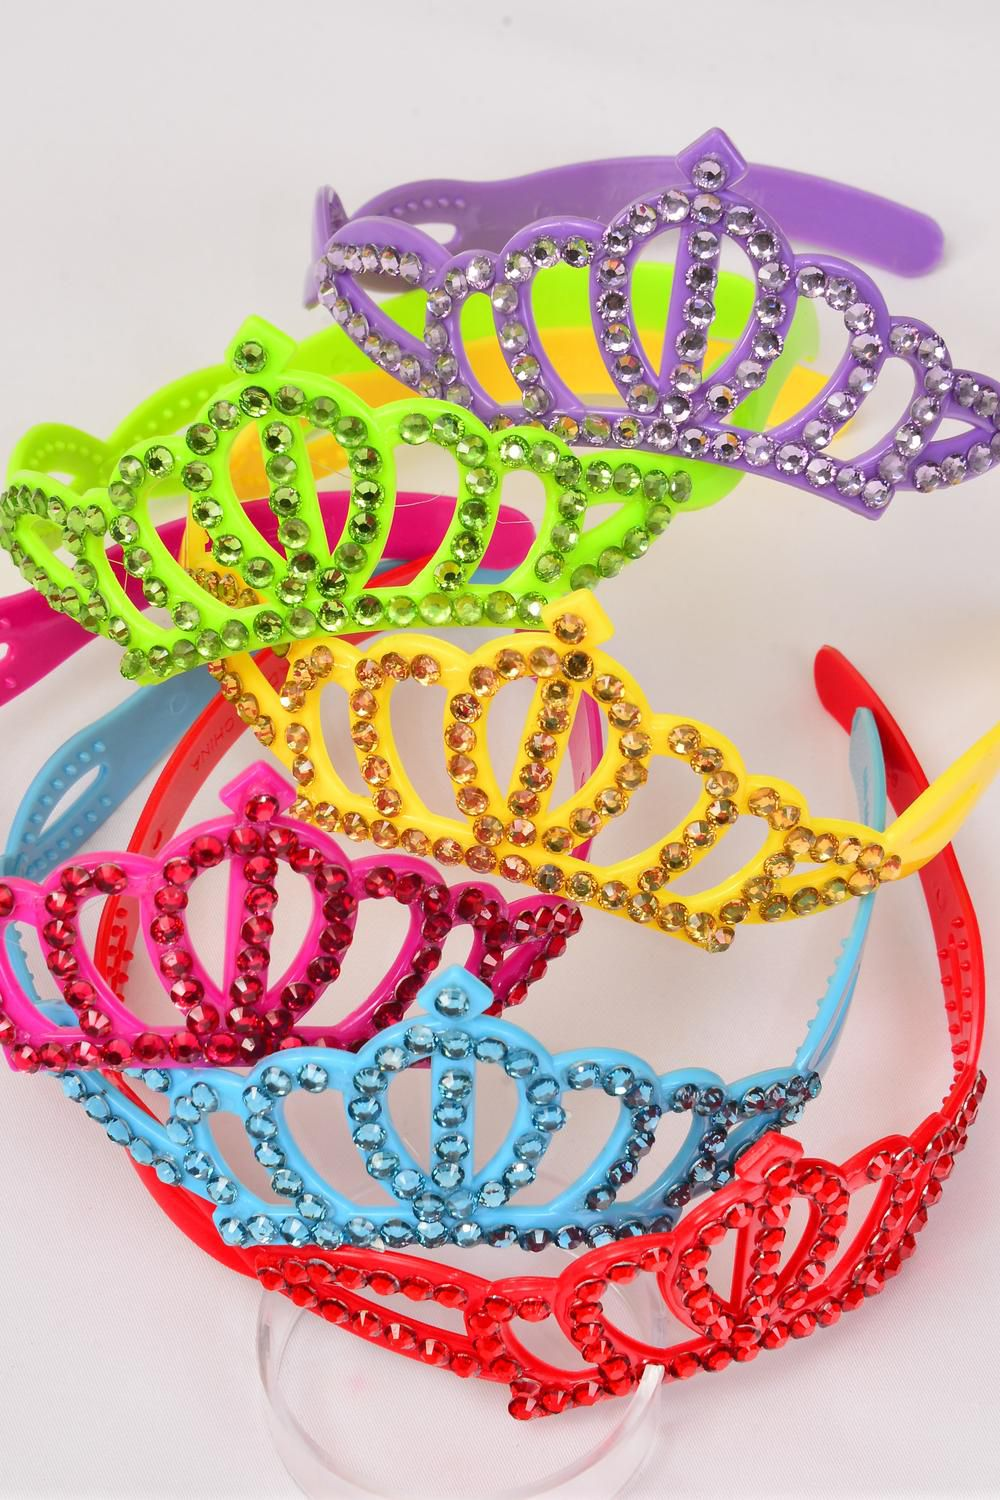 "Headband Tiara Acrylic Large Color Stones/DZ Tiara Size-5.5""x 2"" Wide,2 of each Color Asst,Hang Tag & Individual OPP Bag & UPC Code"